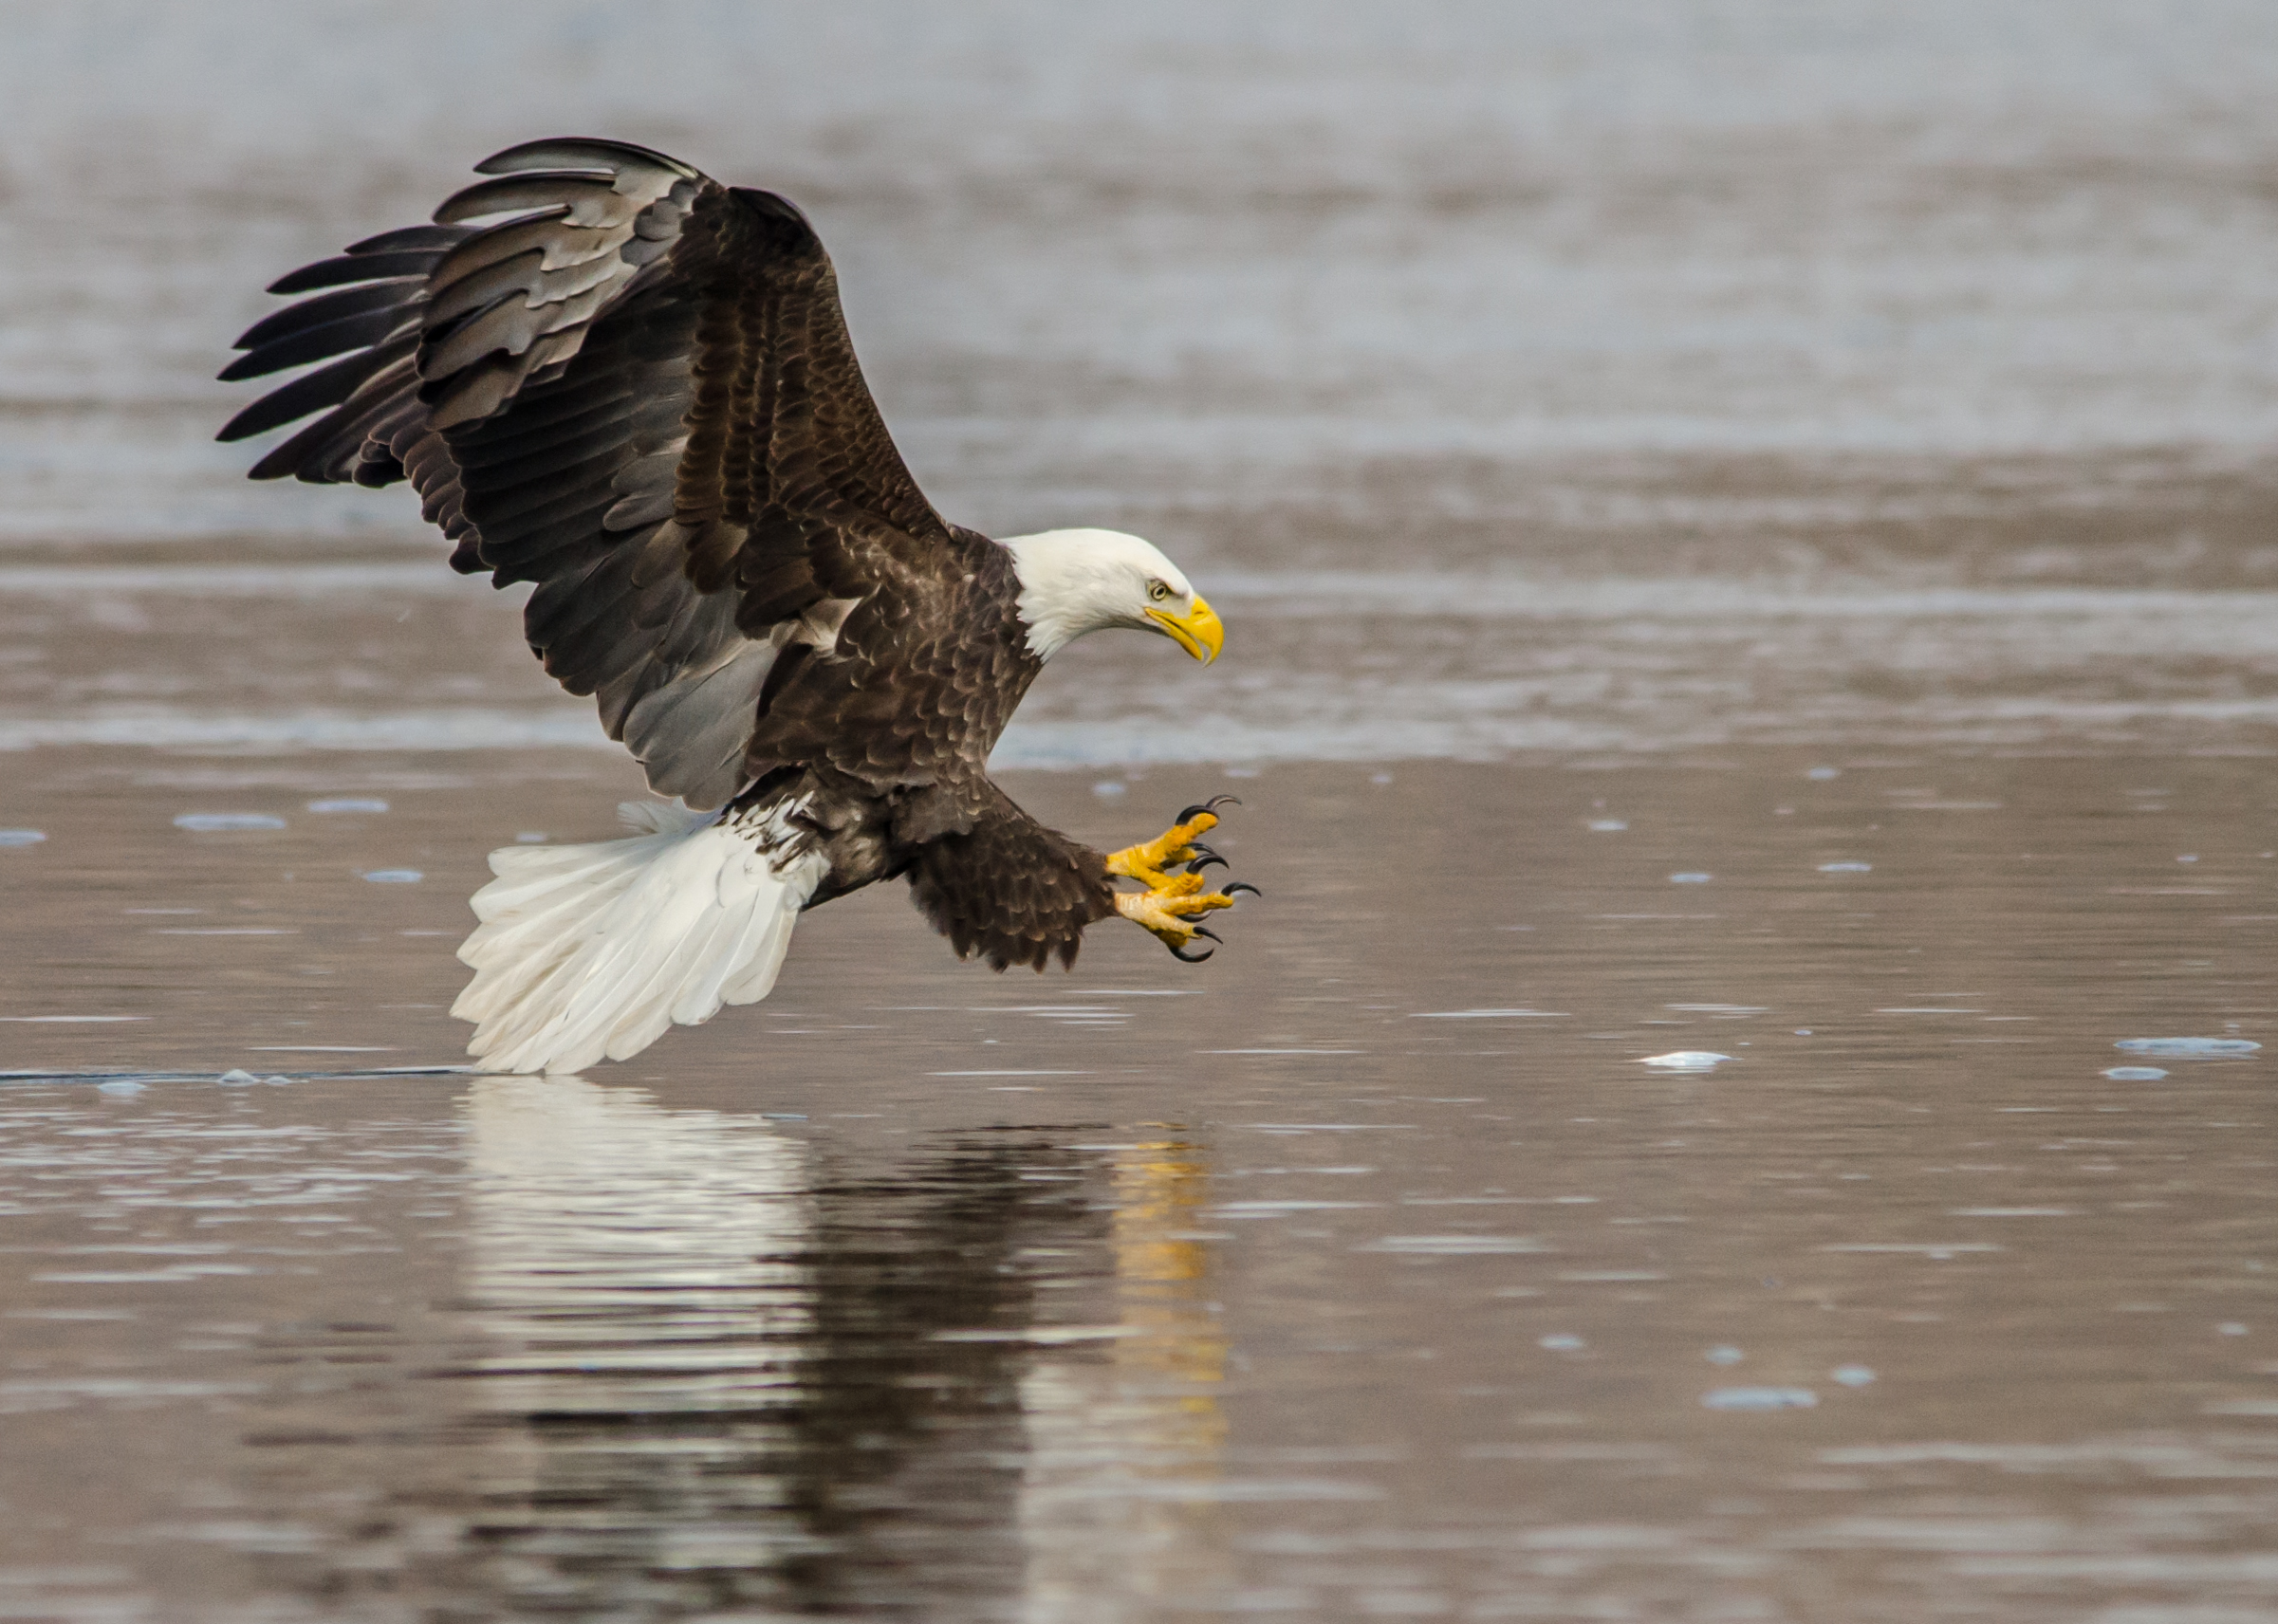 Julie Craves explains why Bald Eagles swim